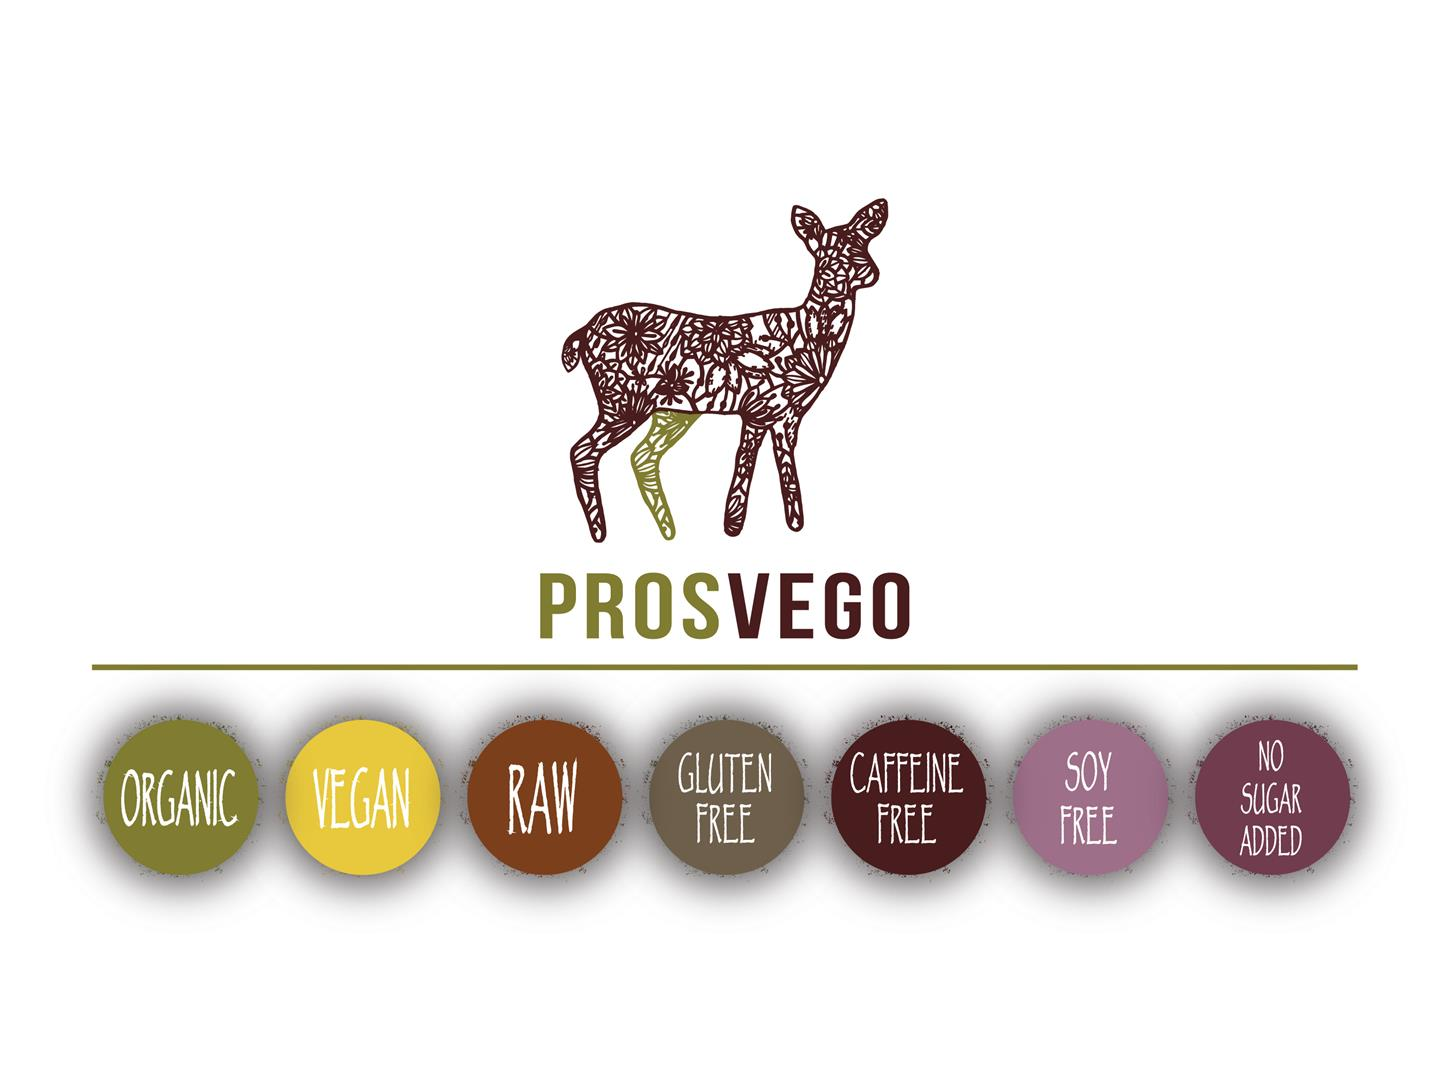 Prosvego is suitable for a variety of diets.